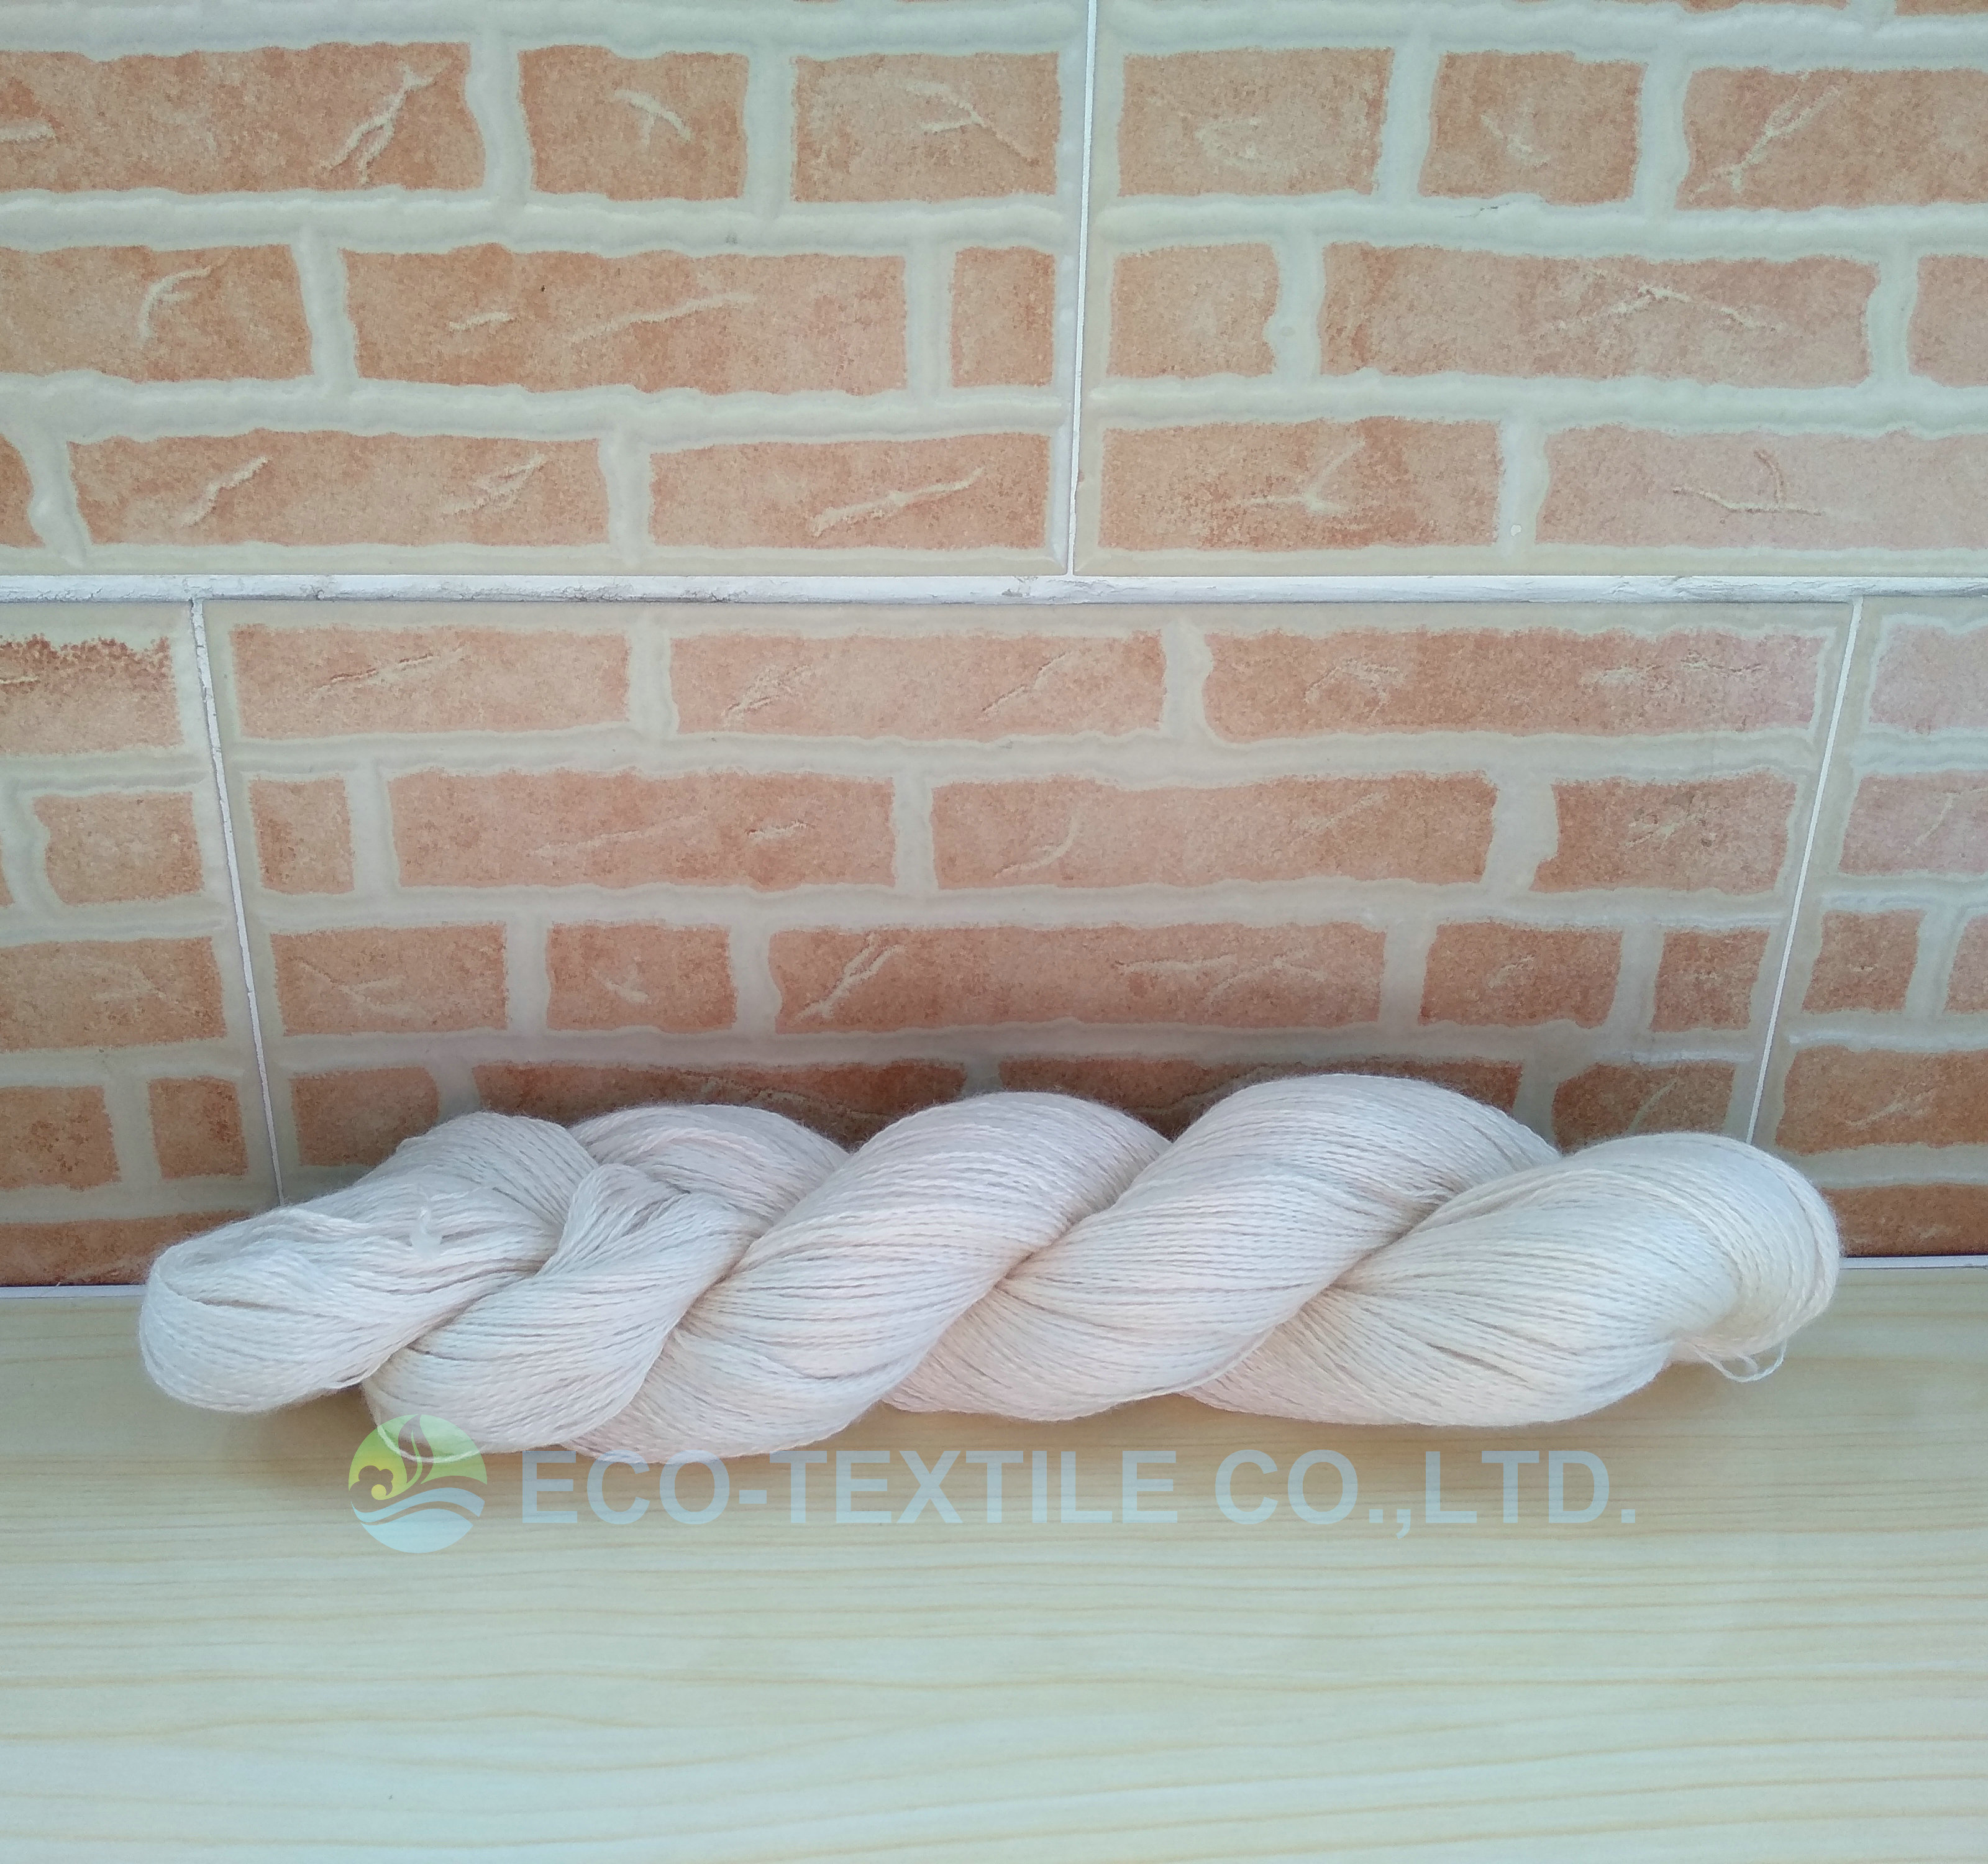 MULBERRY SILK/CASHMERE BLENDED HANDCRAFT YARN